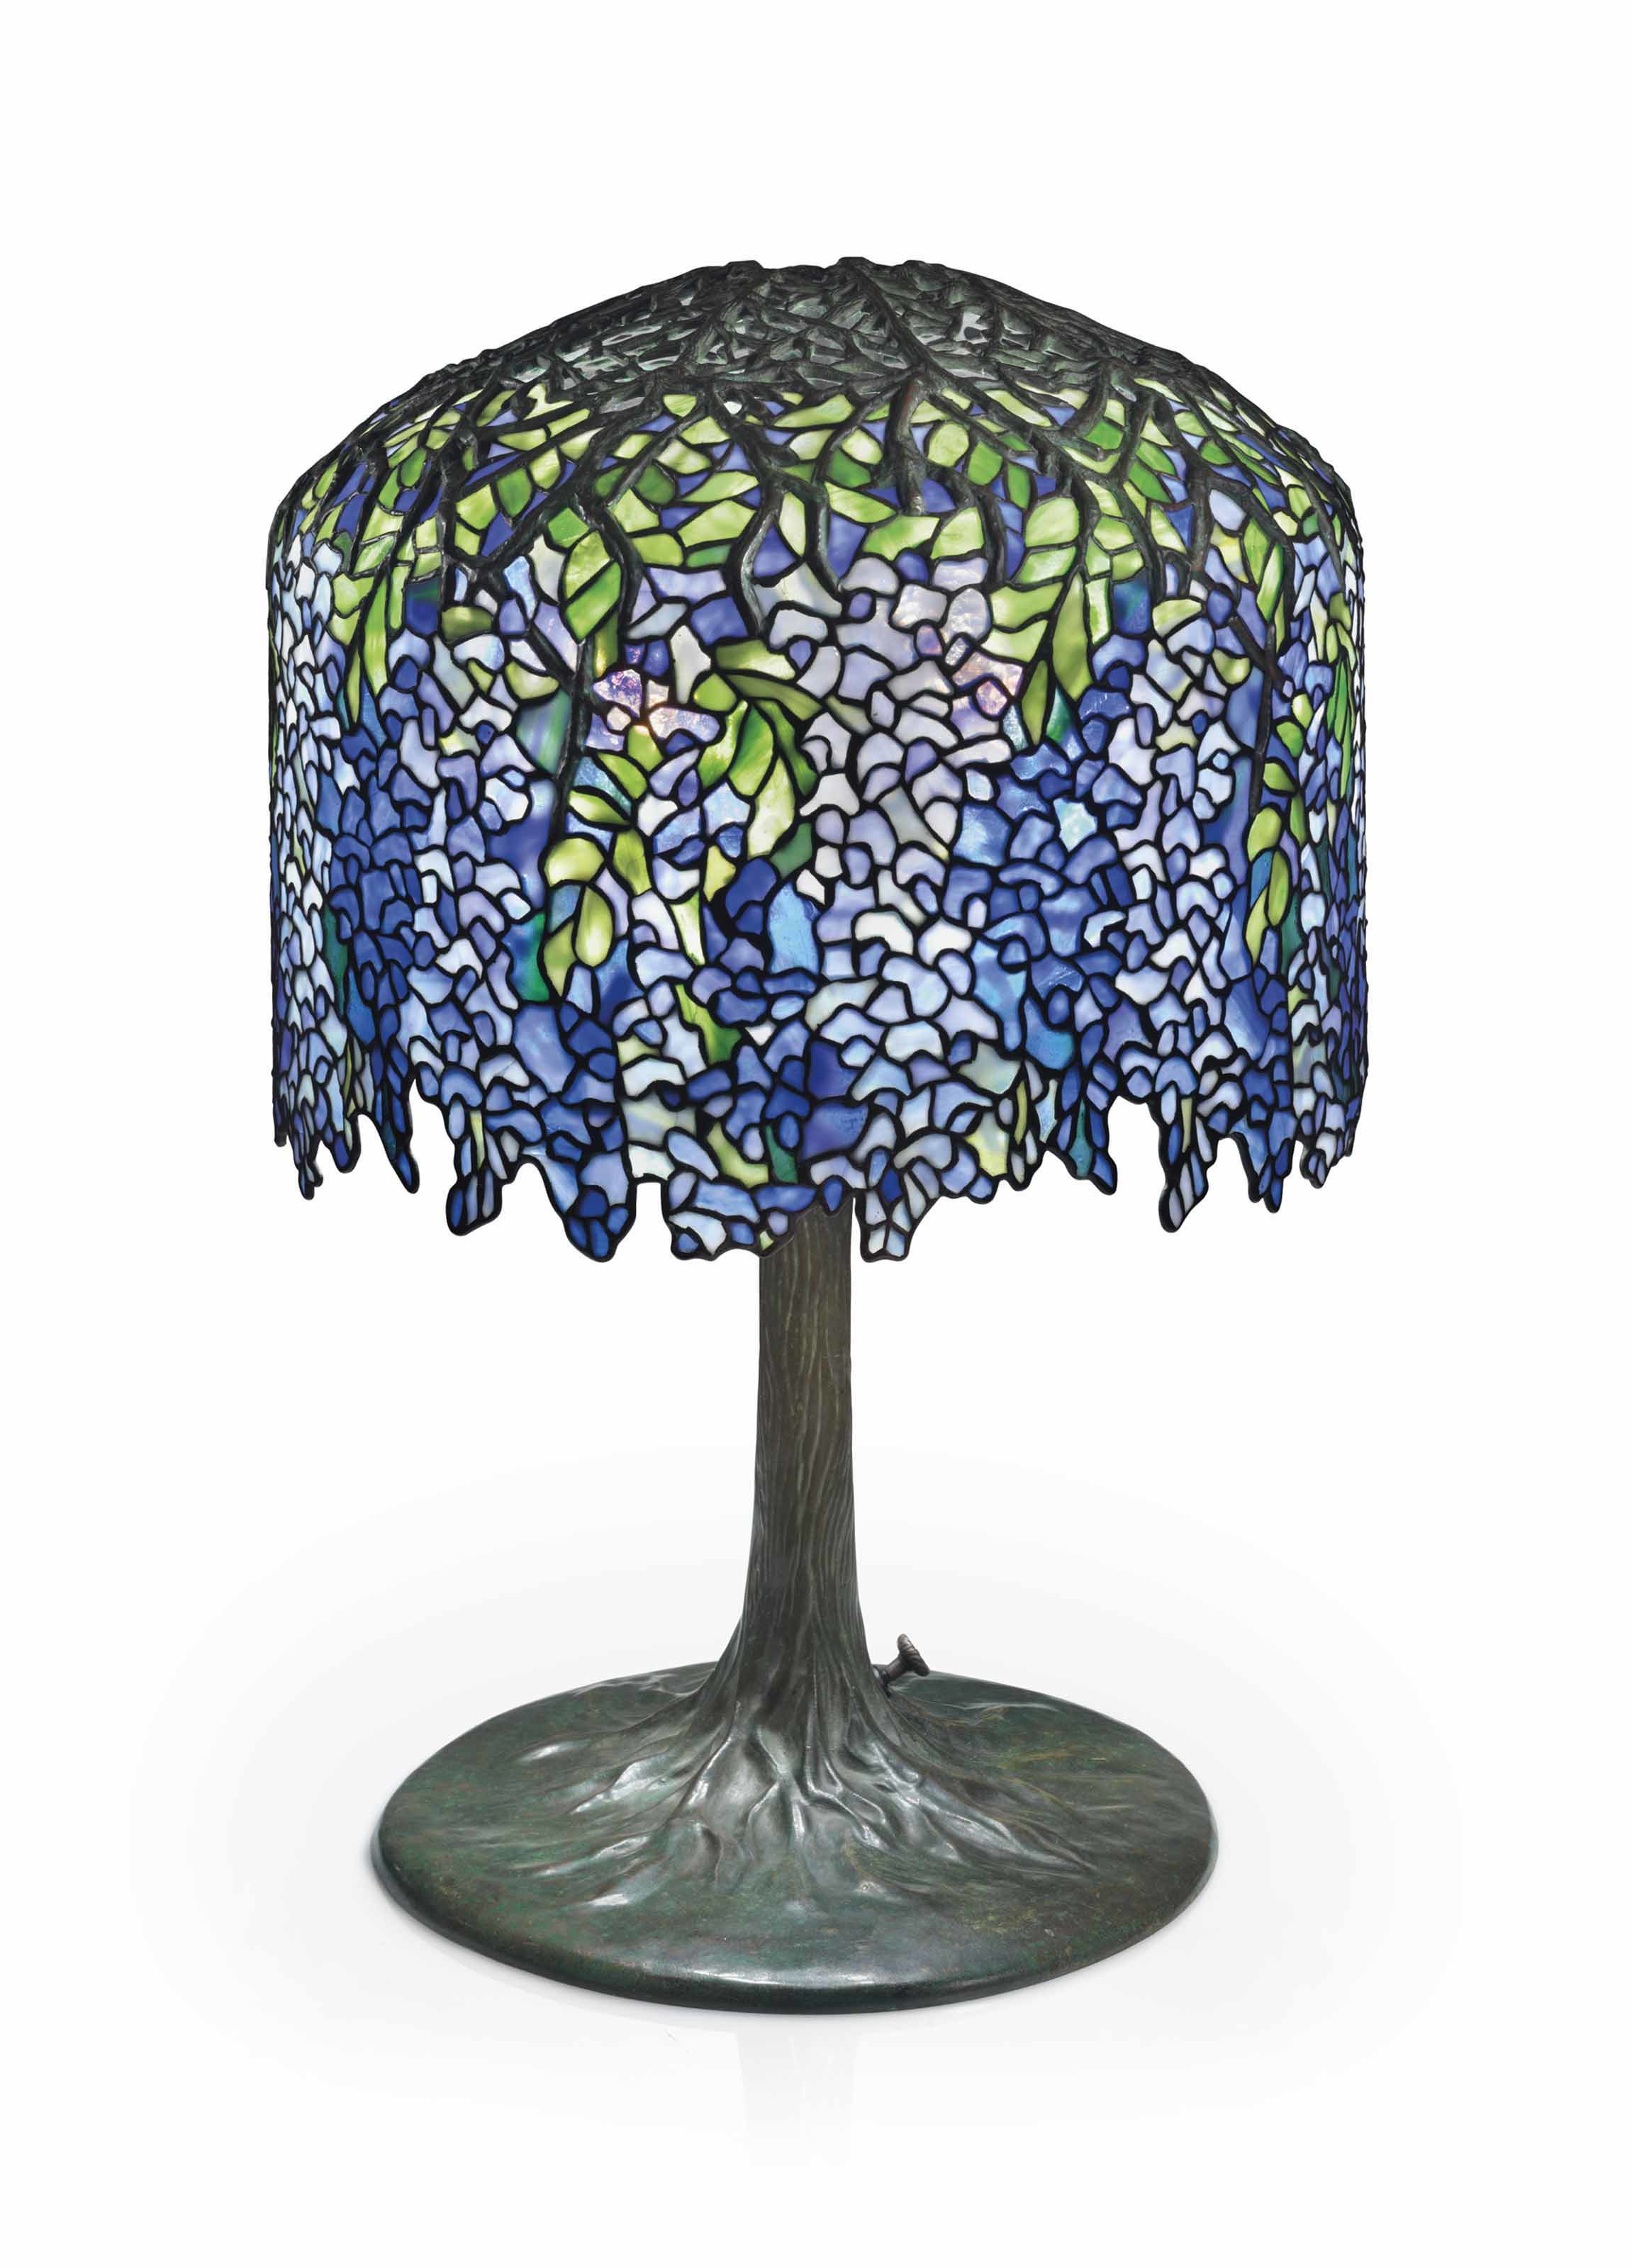 Louis Comfort Tiffany's Wisteria lamp (circa 1905) | Source: christies.com